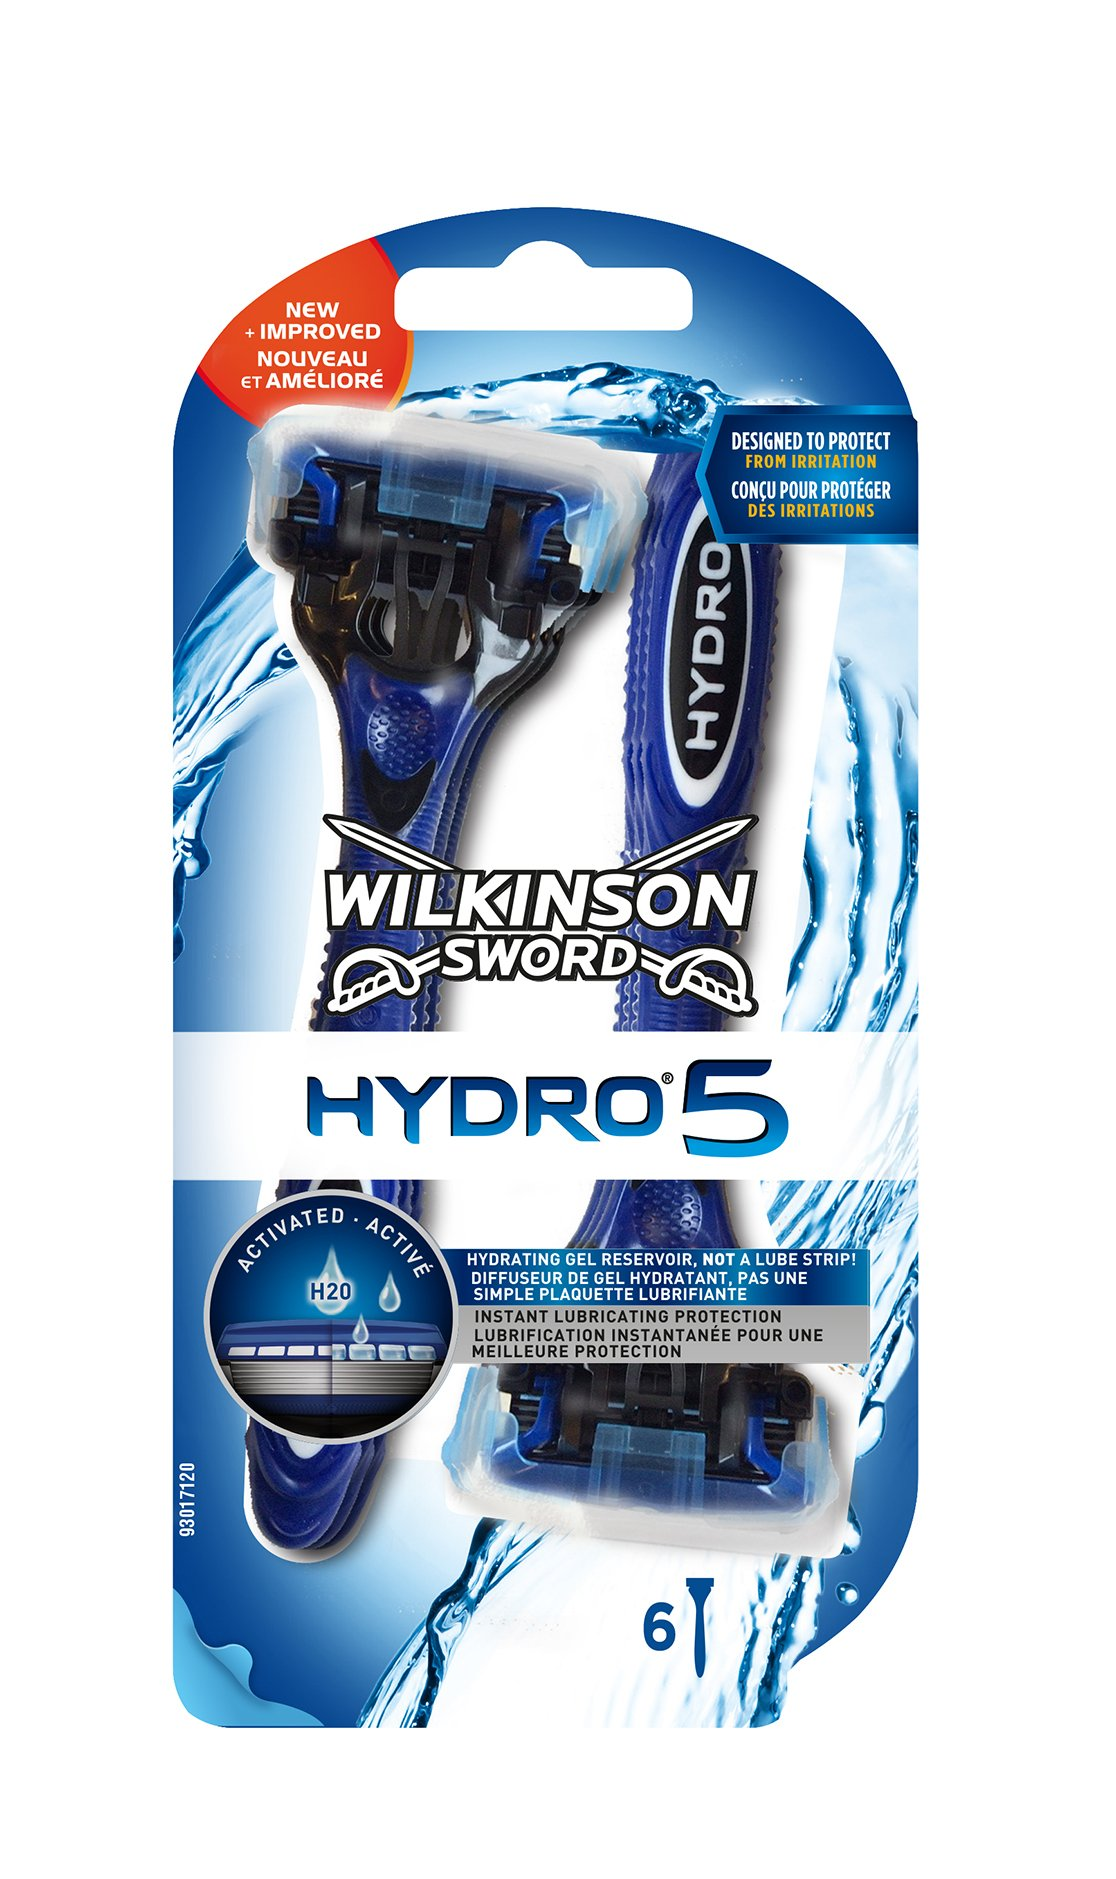 Wilkinson - Hydro 5 - Rasoirs jetables masculins - Pack de 6 product image